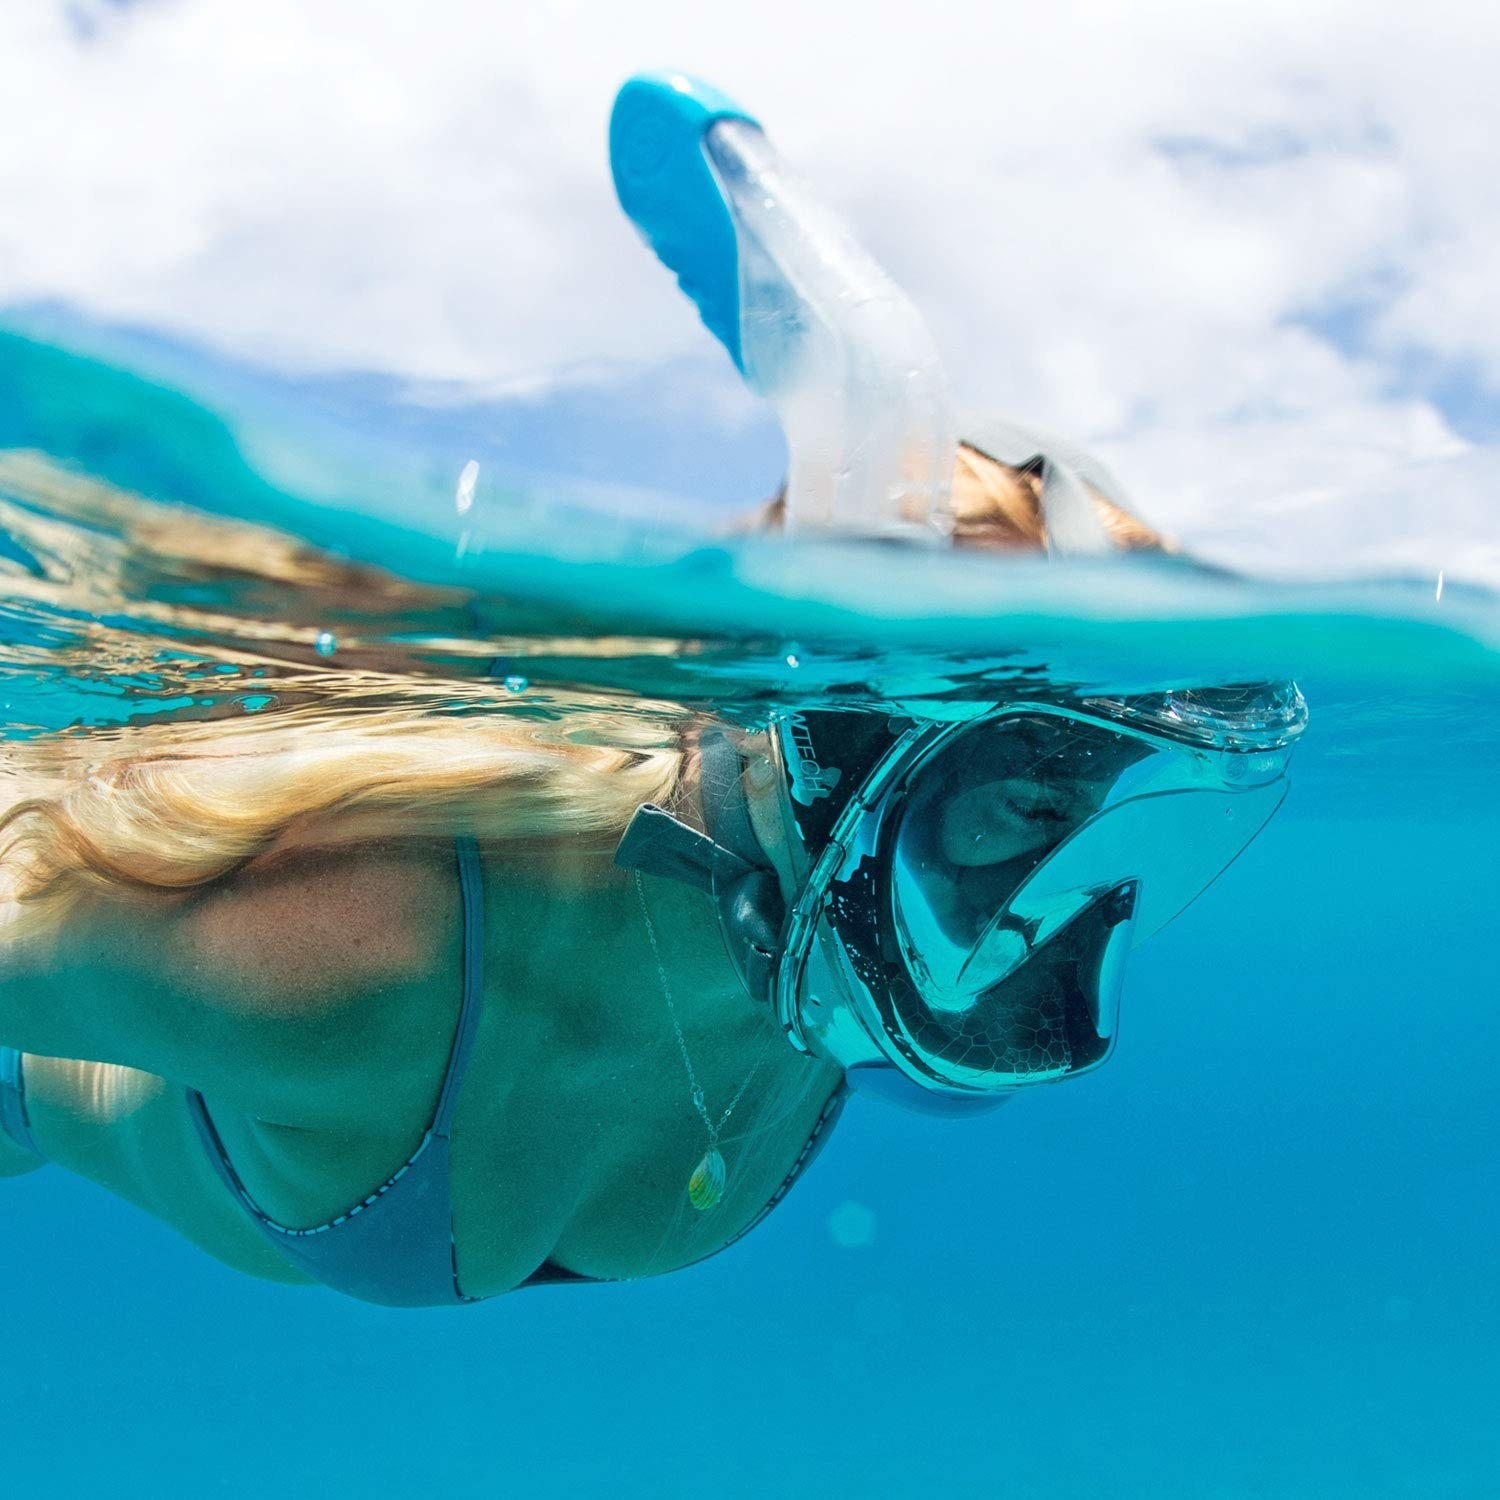 model wearing a full face snorkel mask while swimming in the ocean